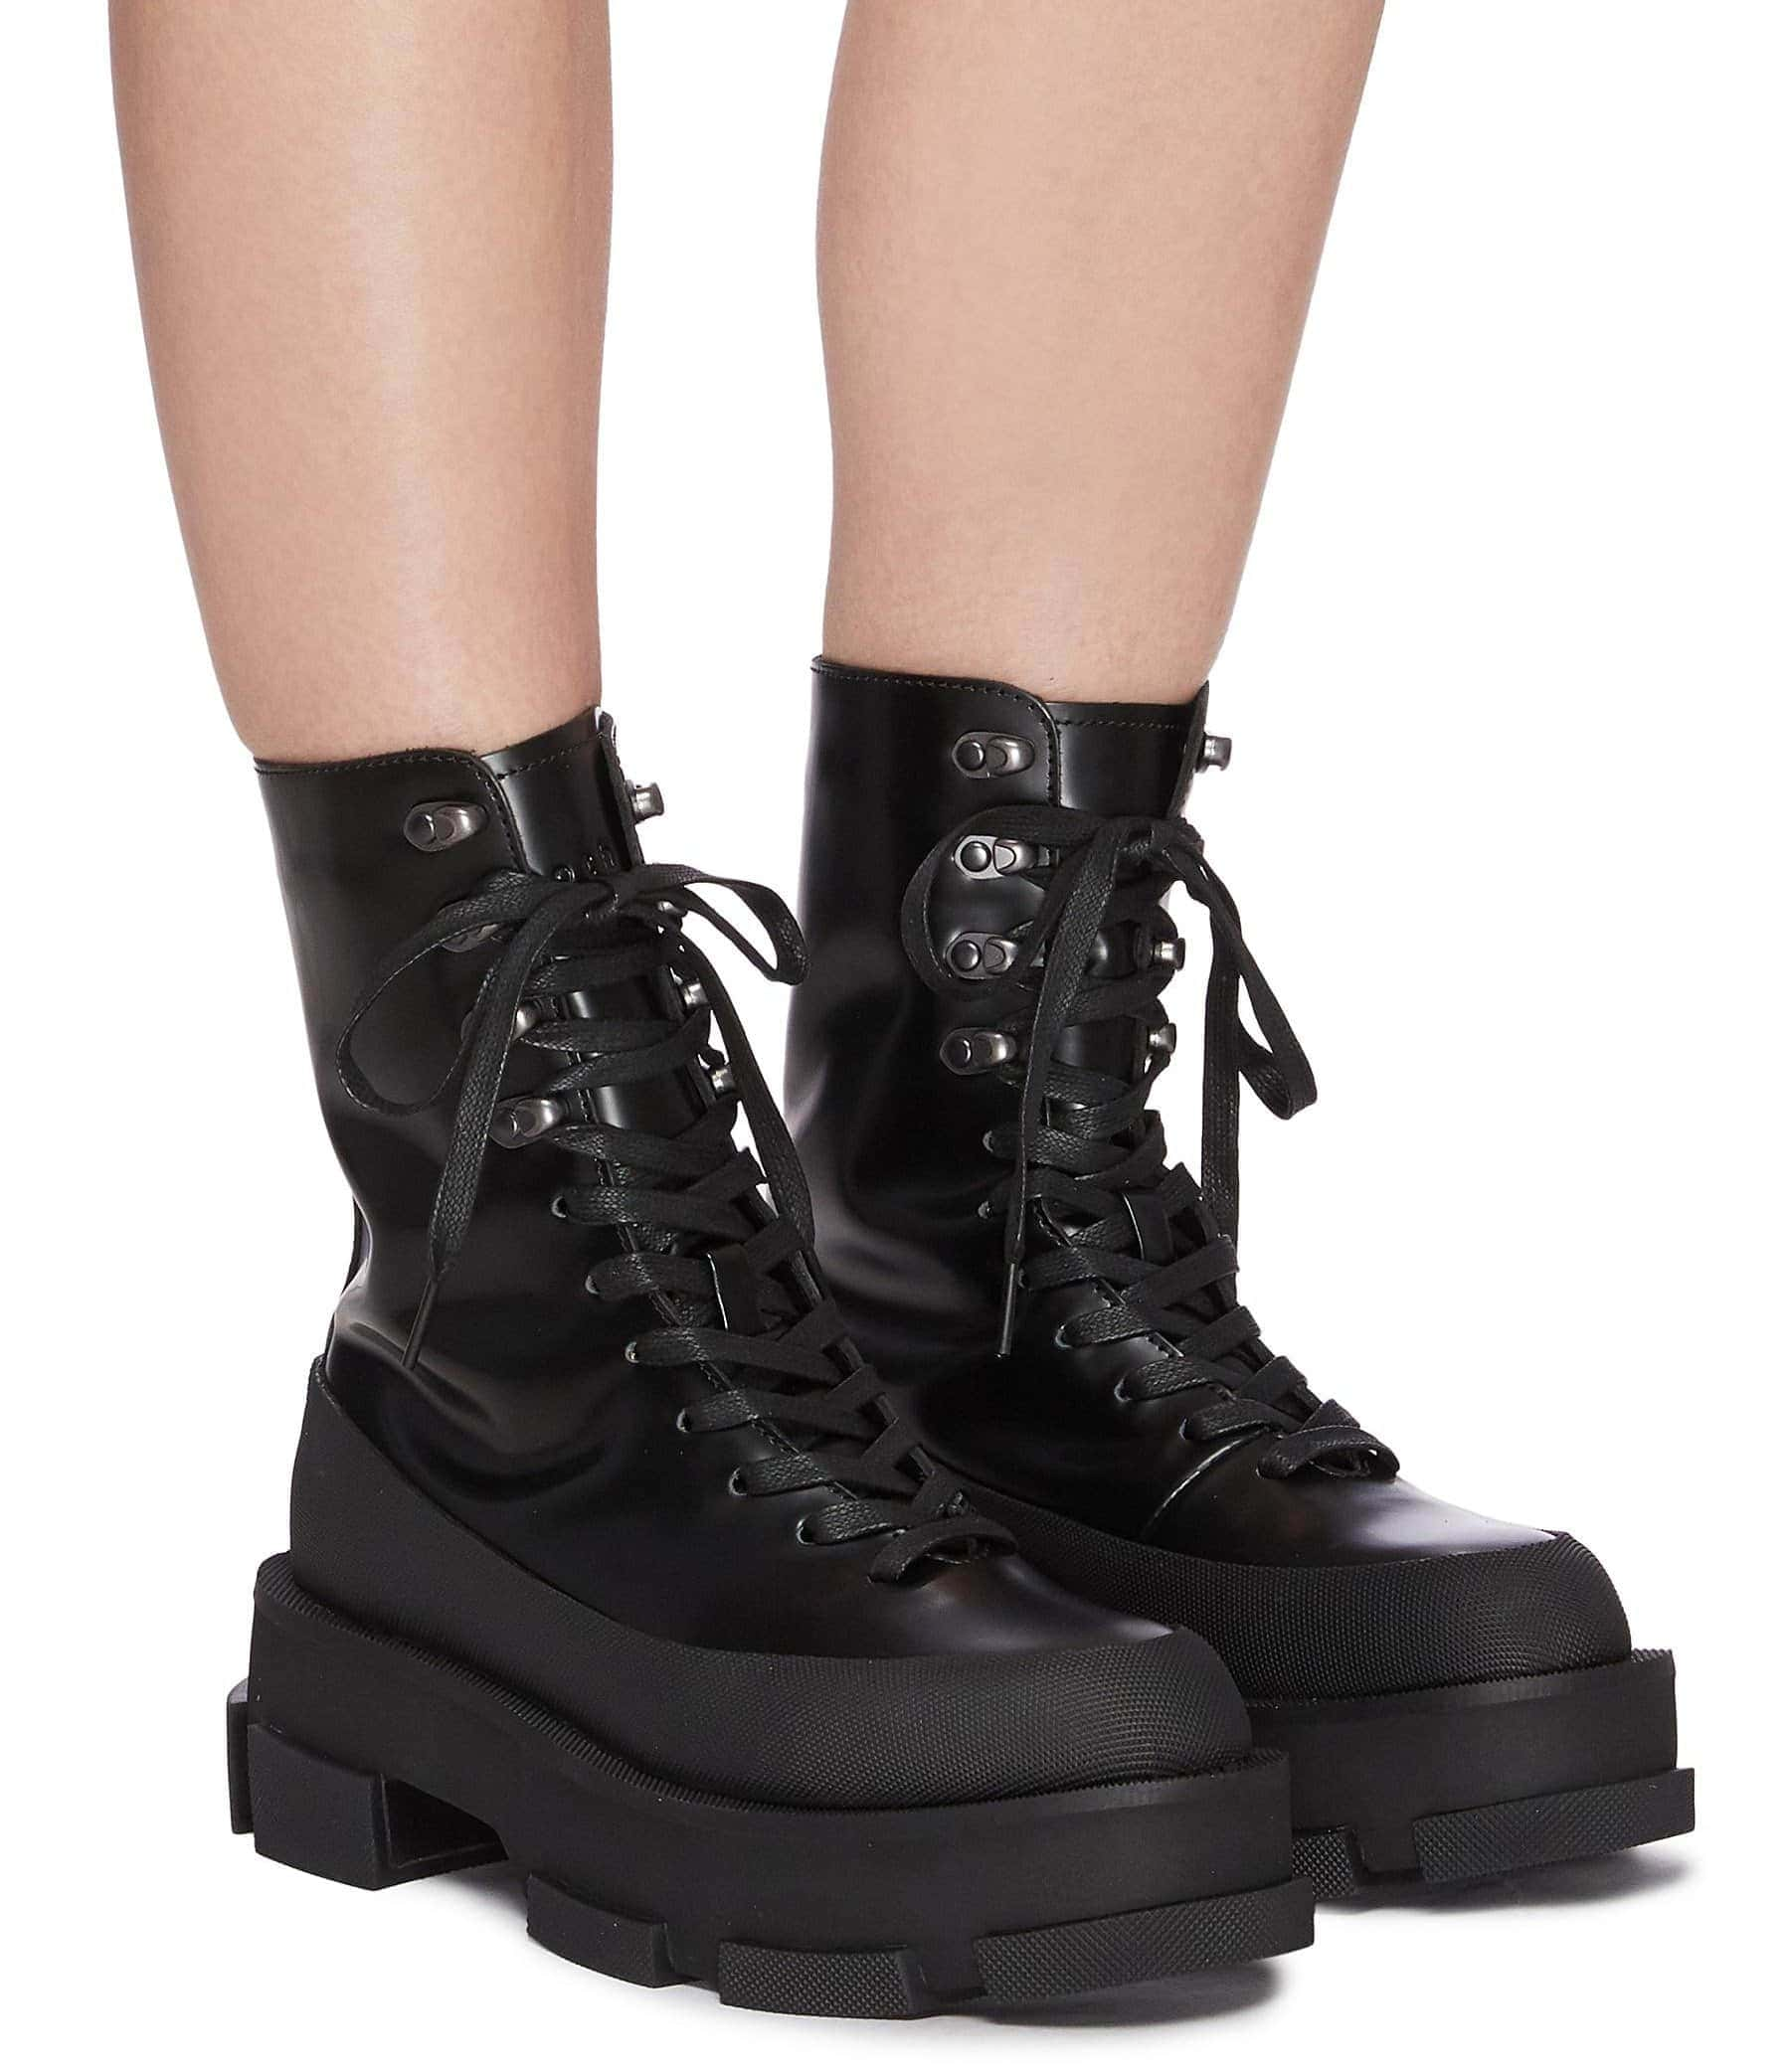 Both's Gao combat boots are crafted from spazzolato leather with rubber trims